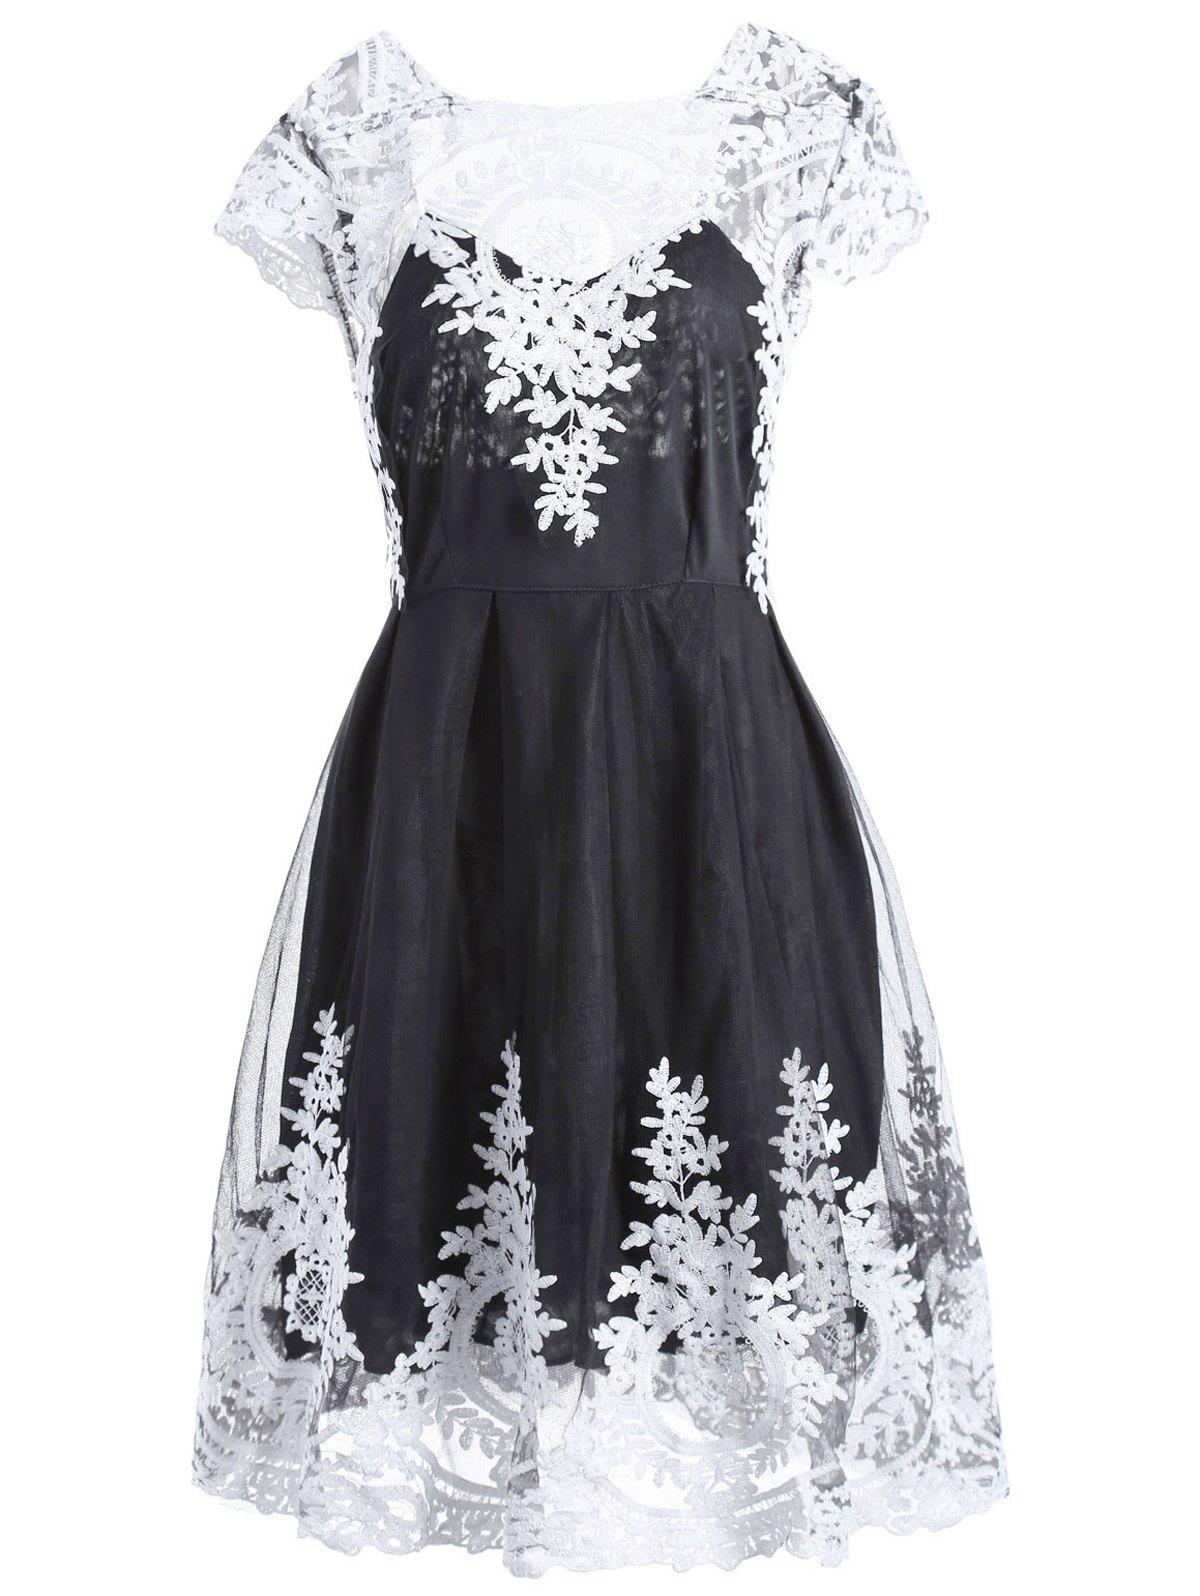 Retro Lace Square Neck Short Sleeve Dress For Women